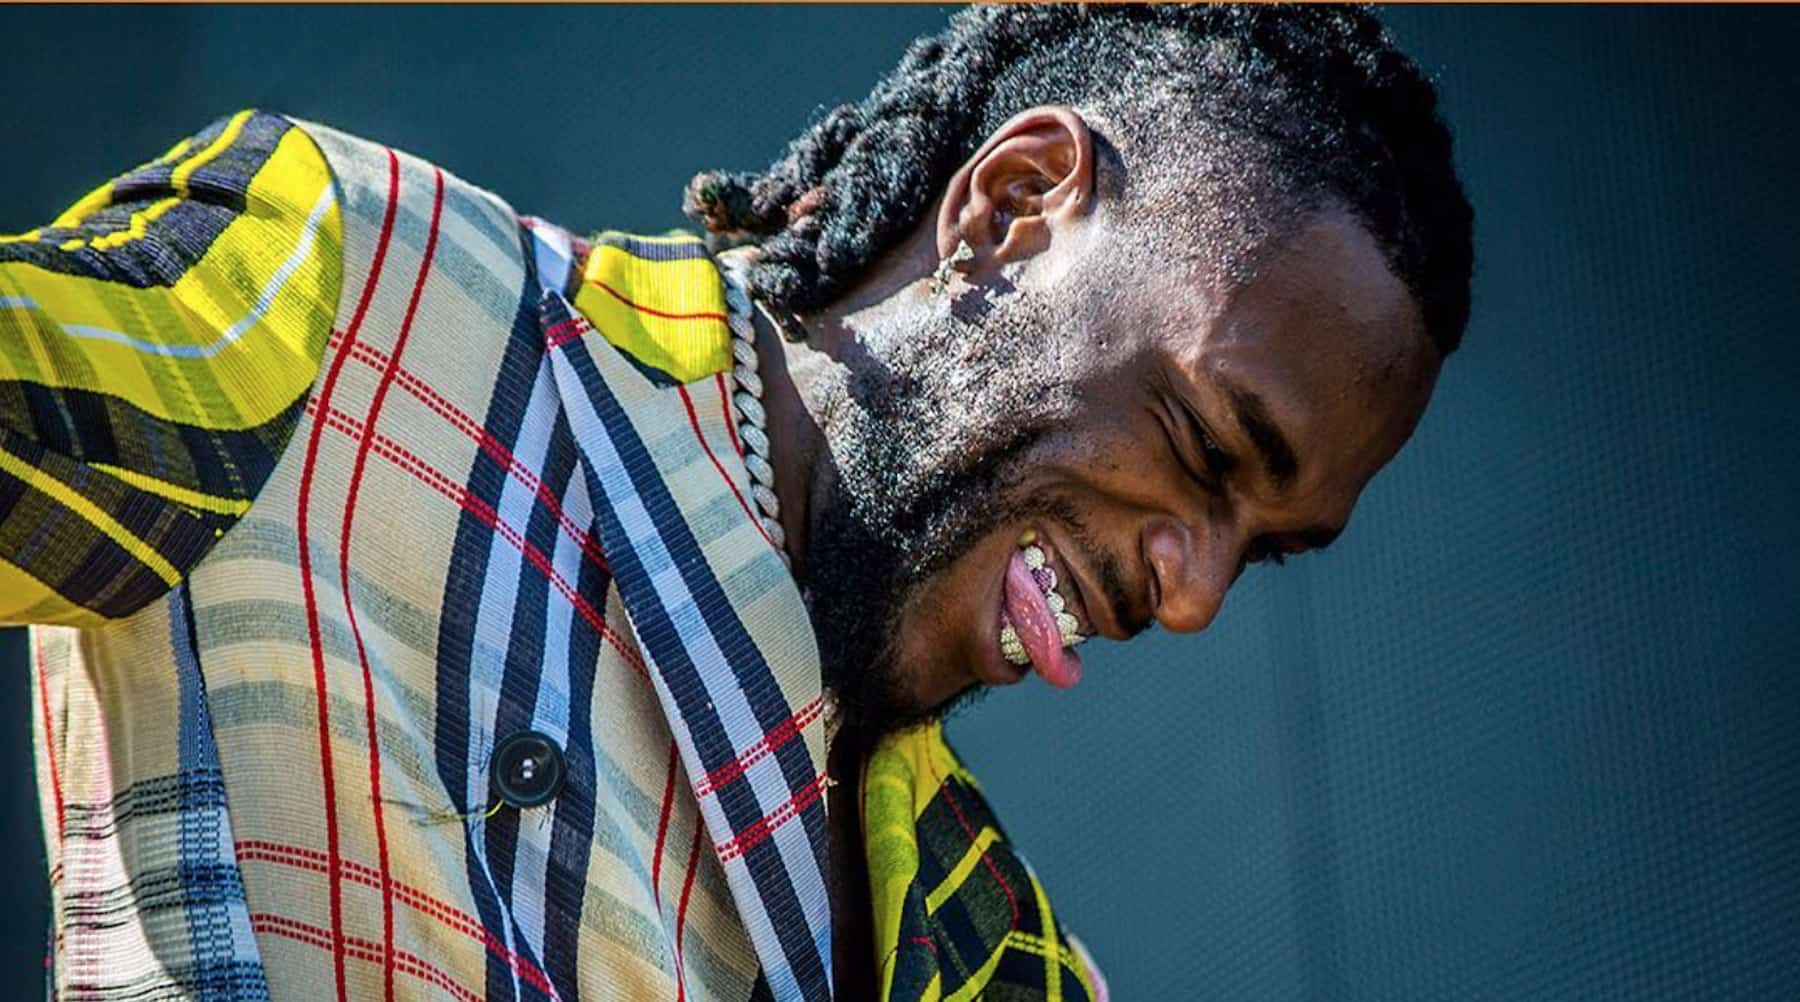 Burna Boy delivers on his promise to his parents as he receives his Grammy Plaque